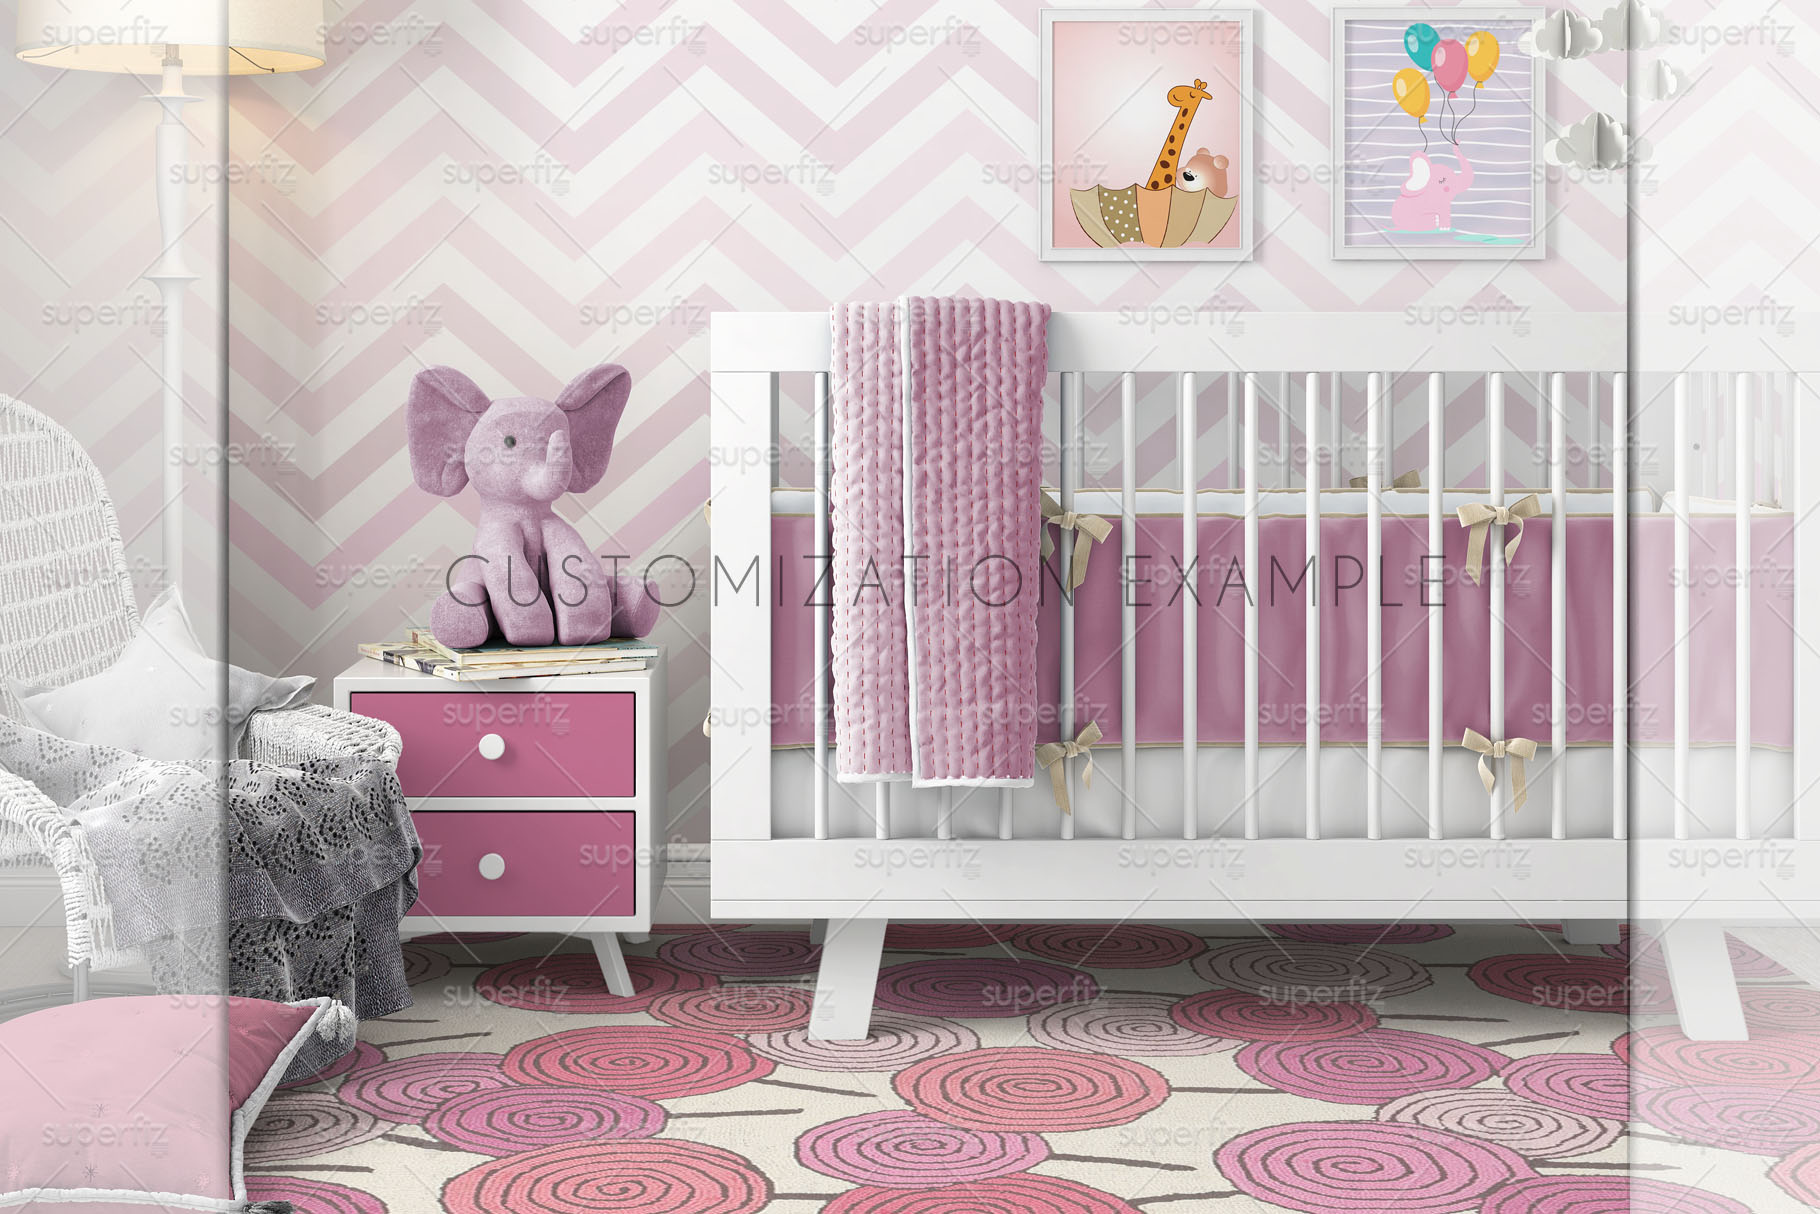 Wallpaper, floor, carpet and frame Mockup Baby Bedroom SM60 example image 5